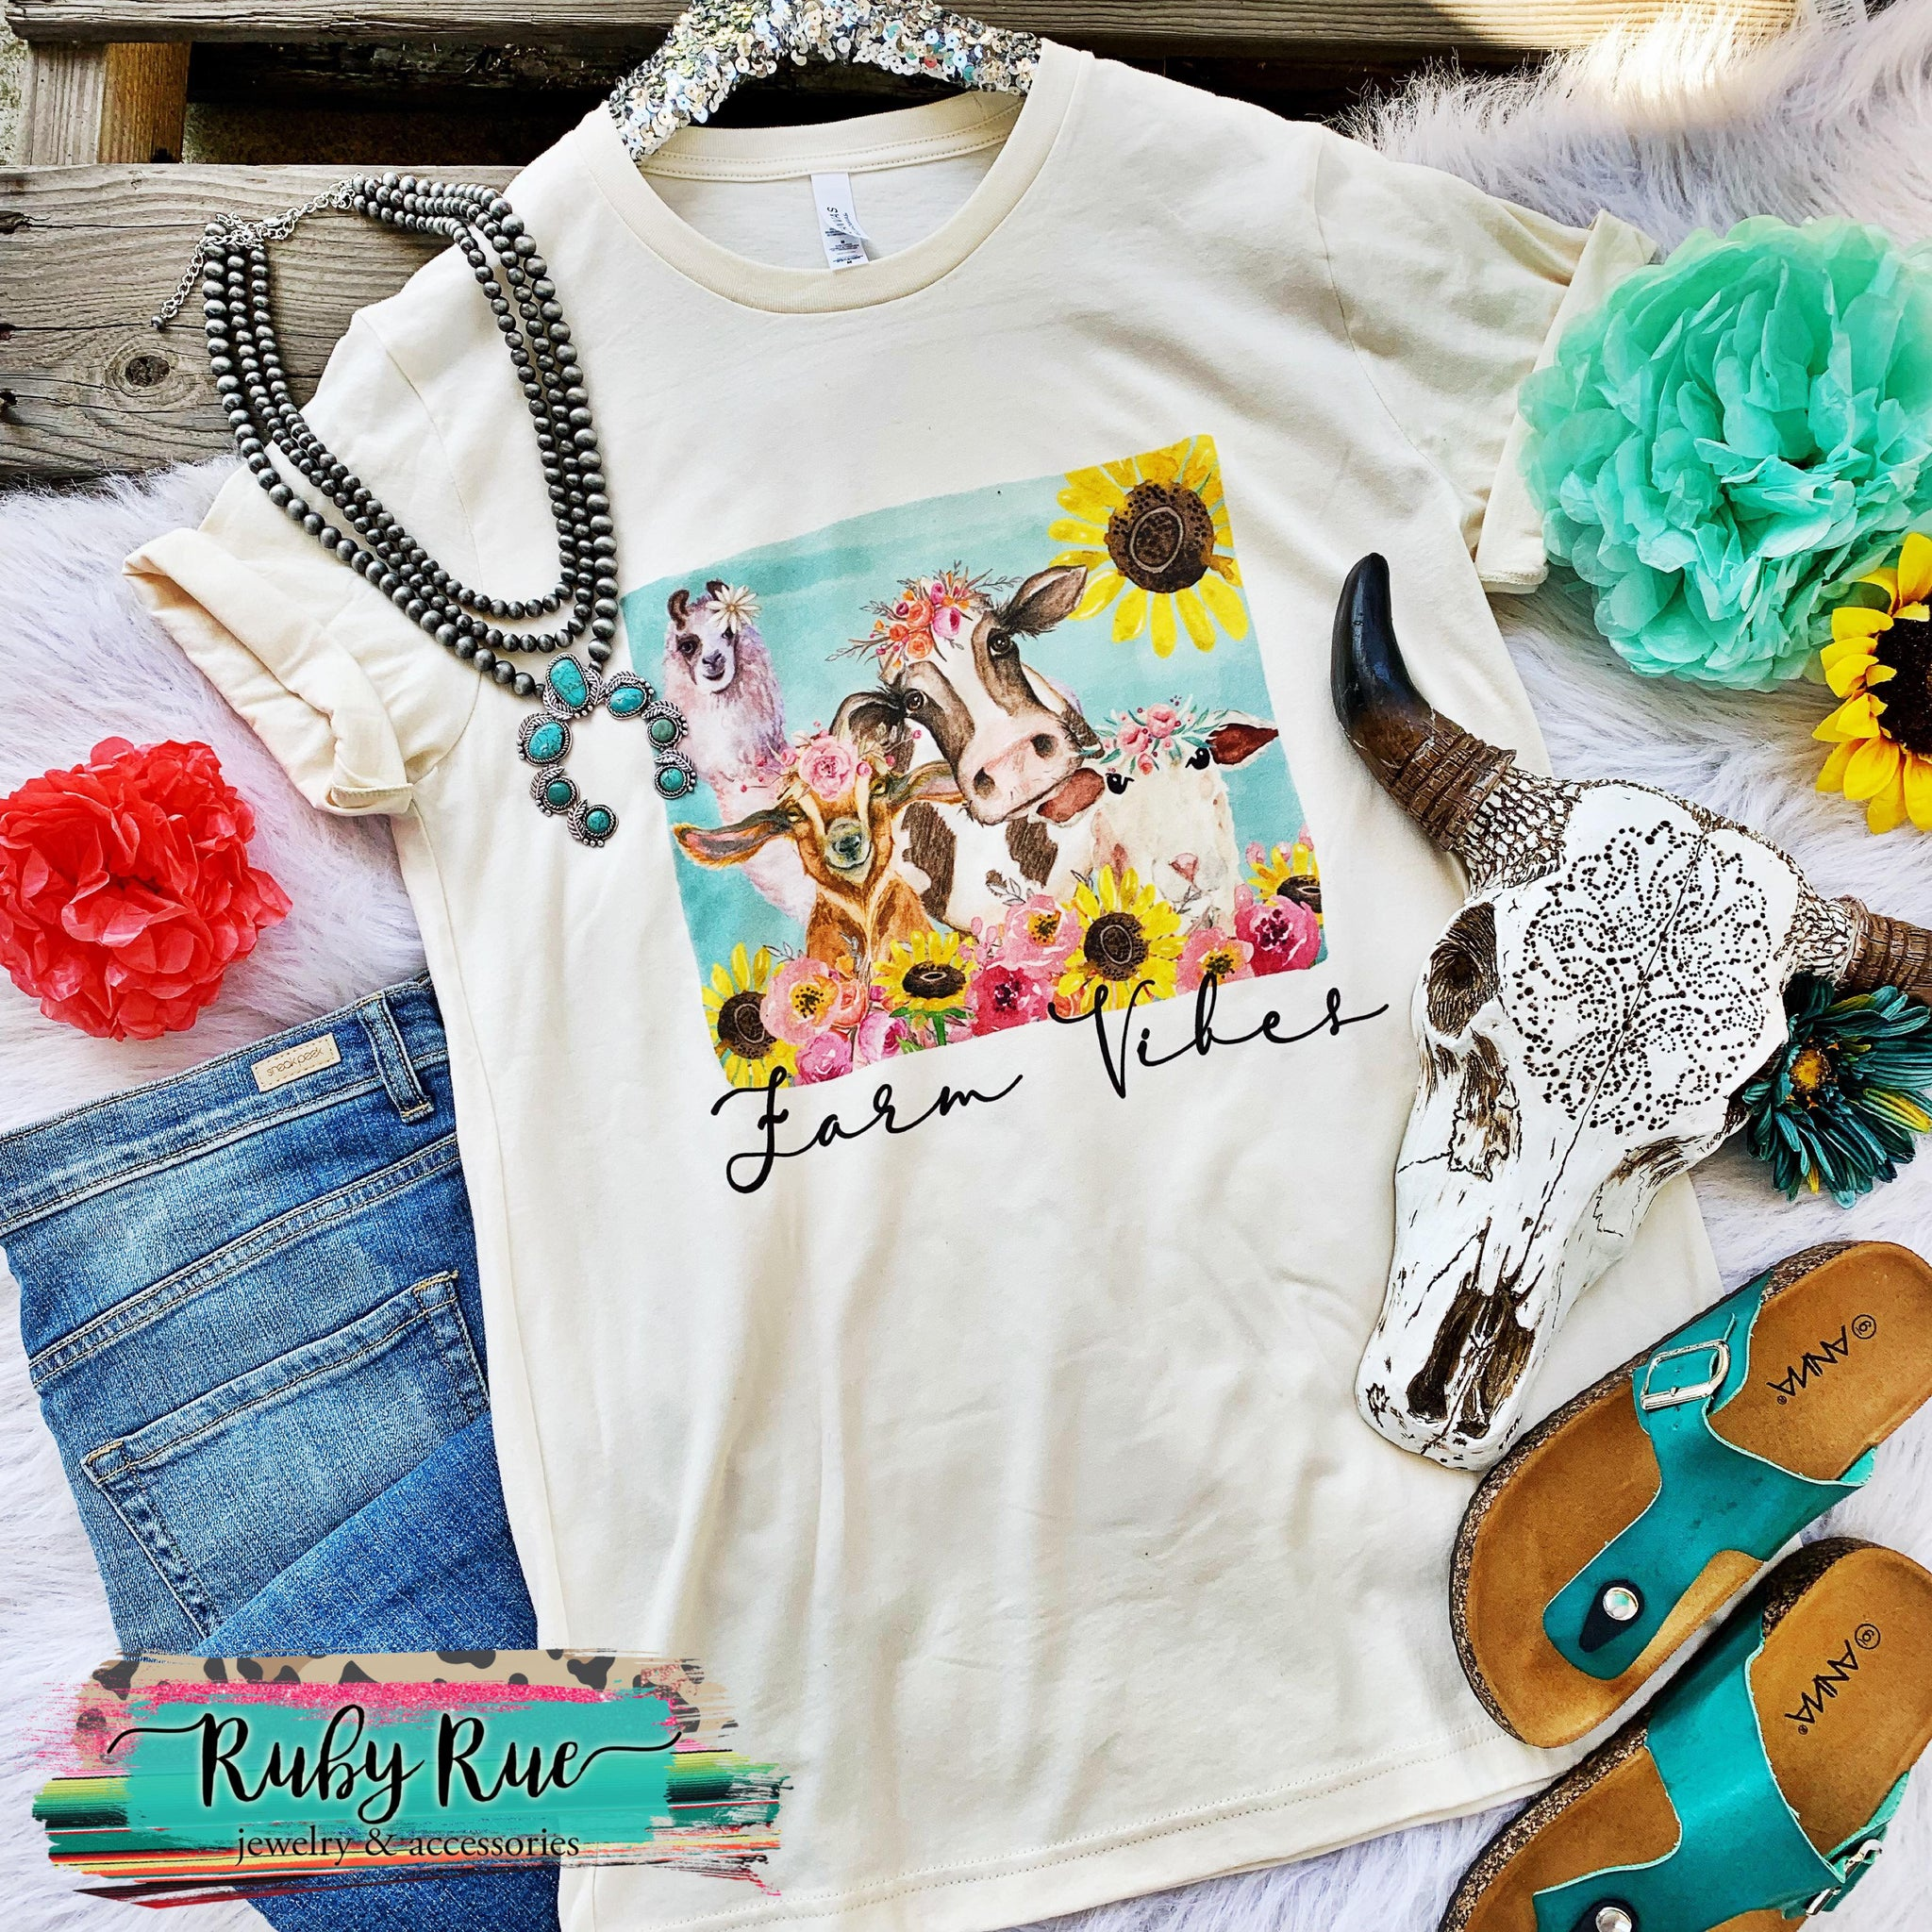 Farm Vibes Boho Tee - Ruby Rue Jewelry & Accessories